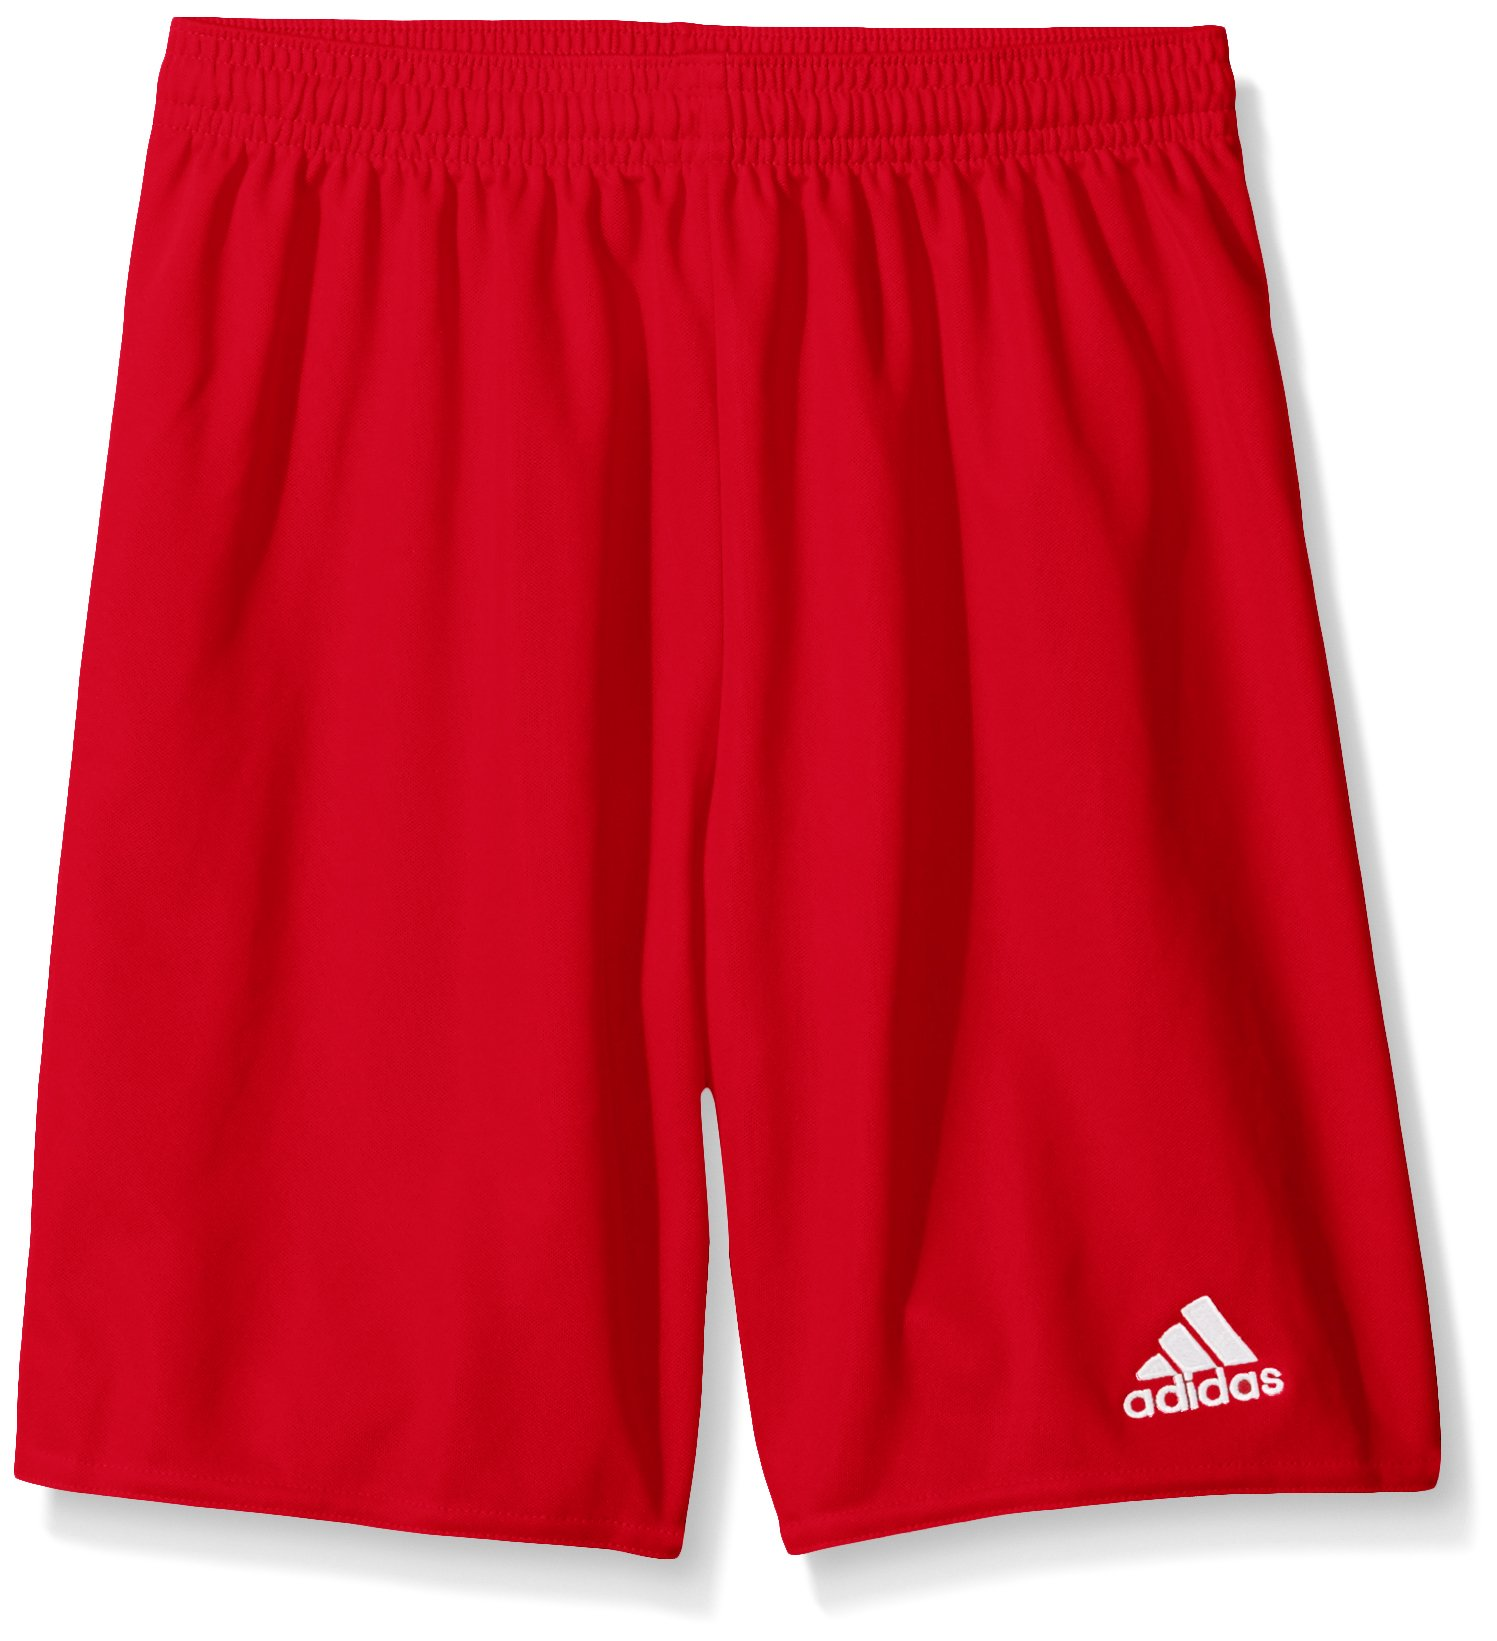 adidas Youth Parma 16 Shorts, Power